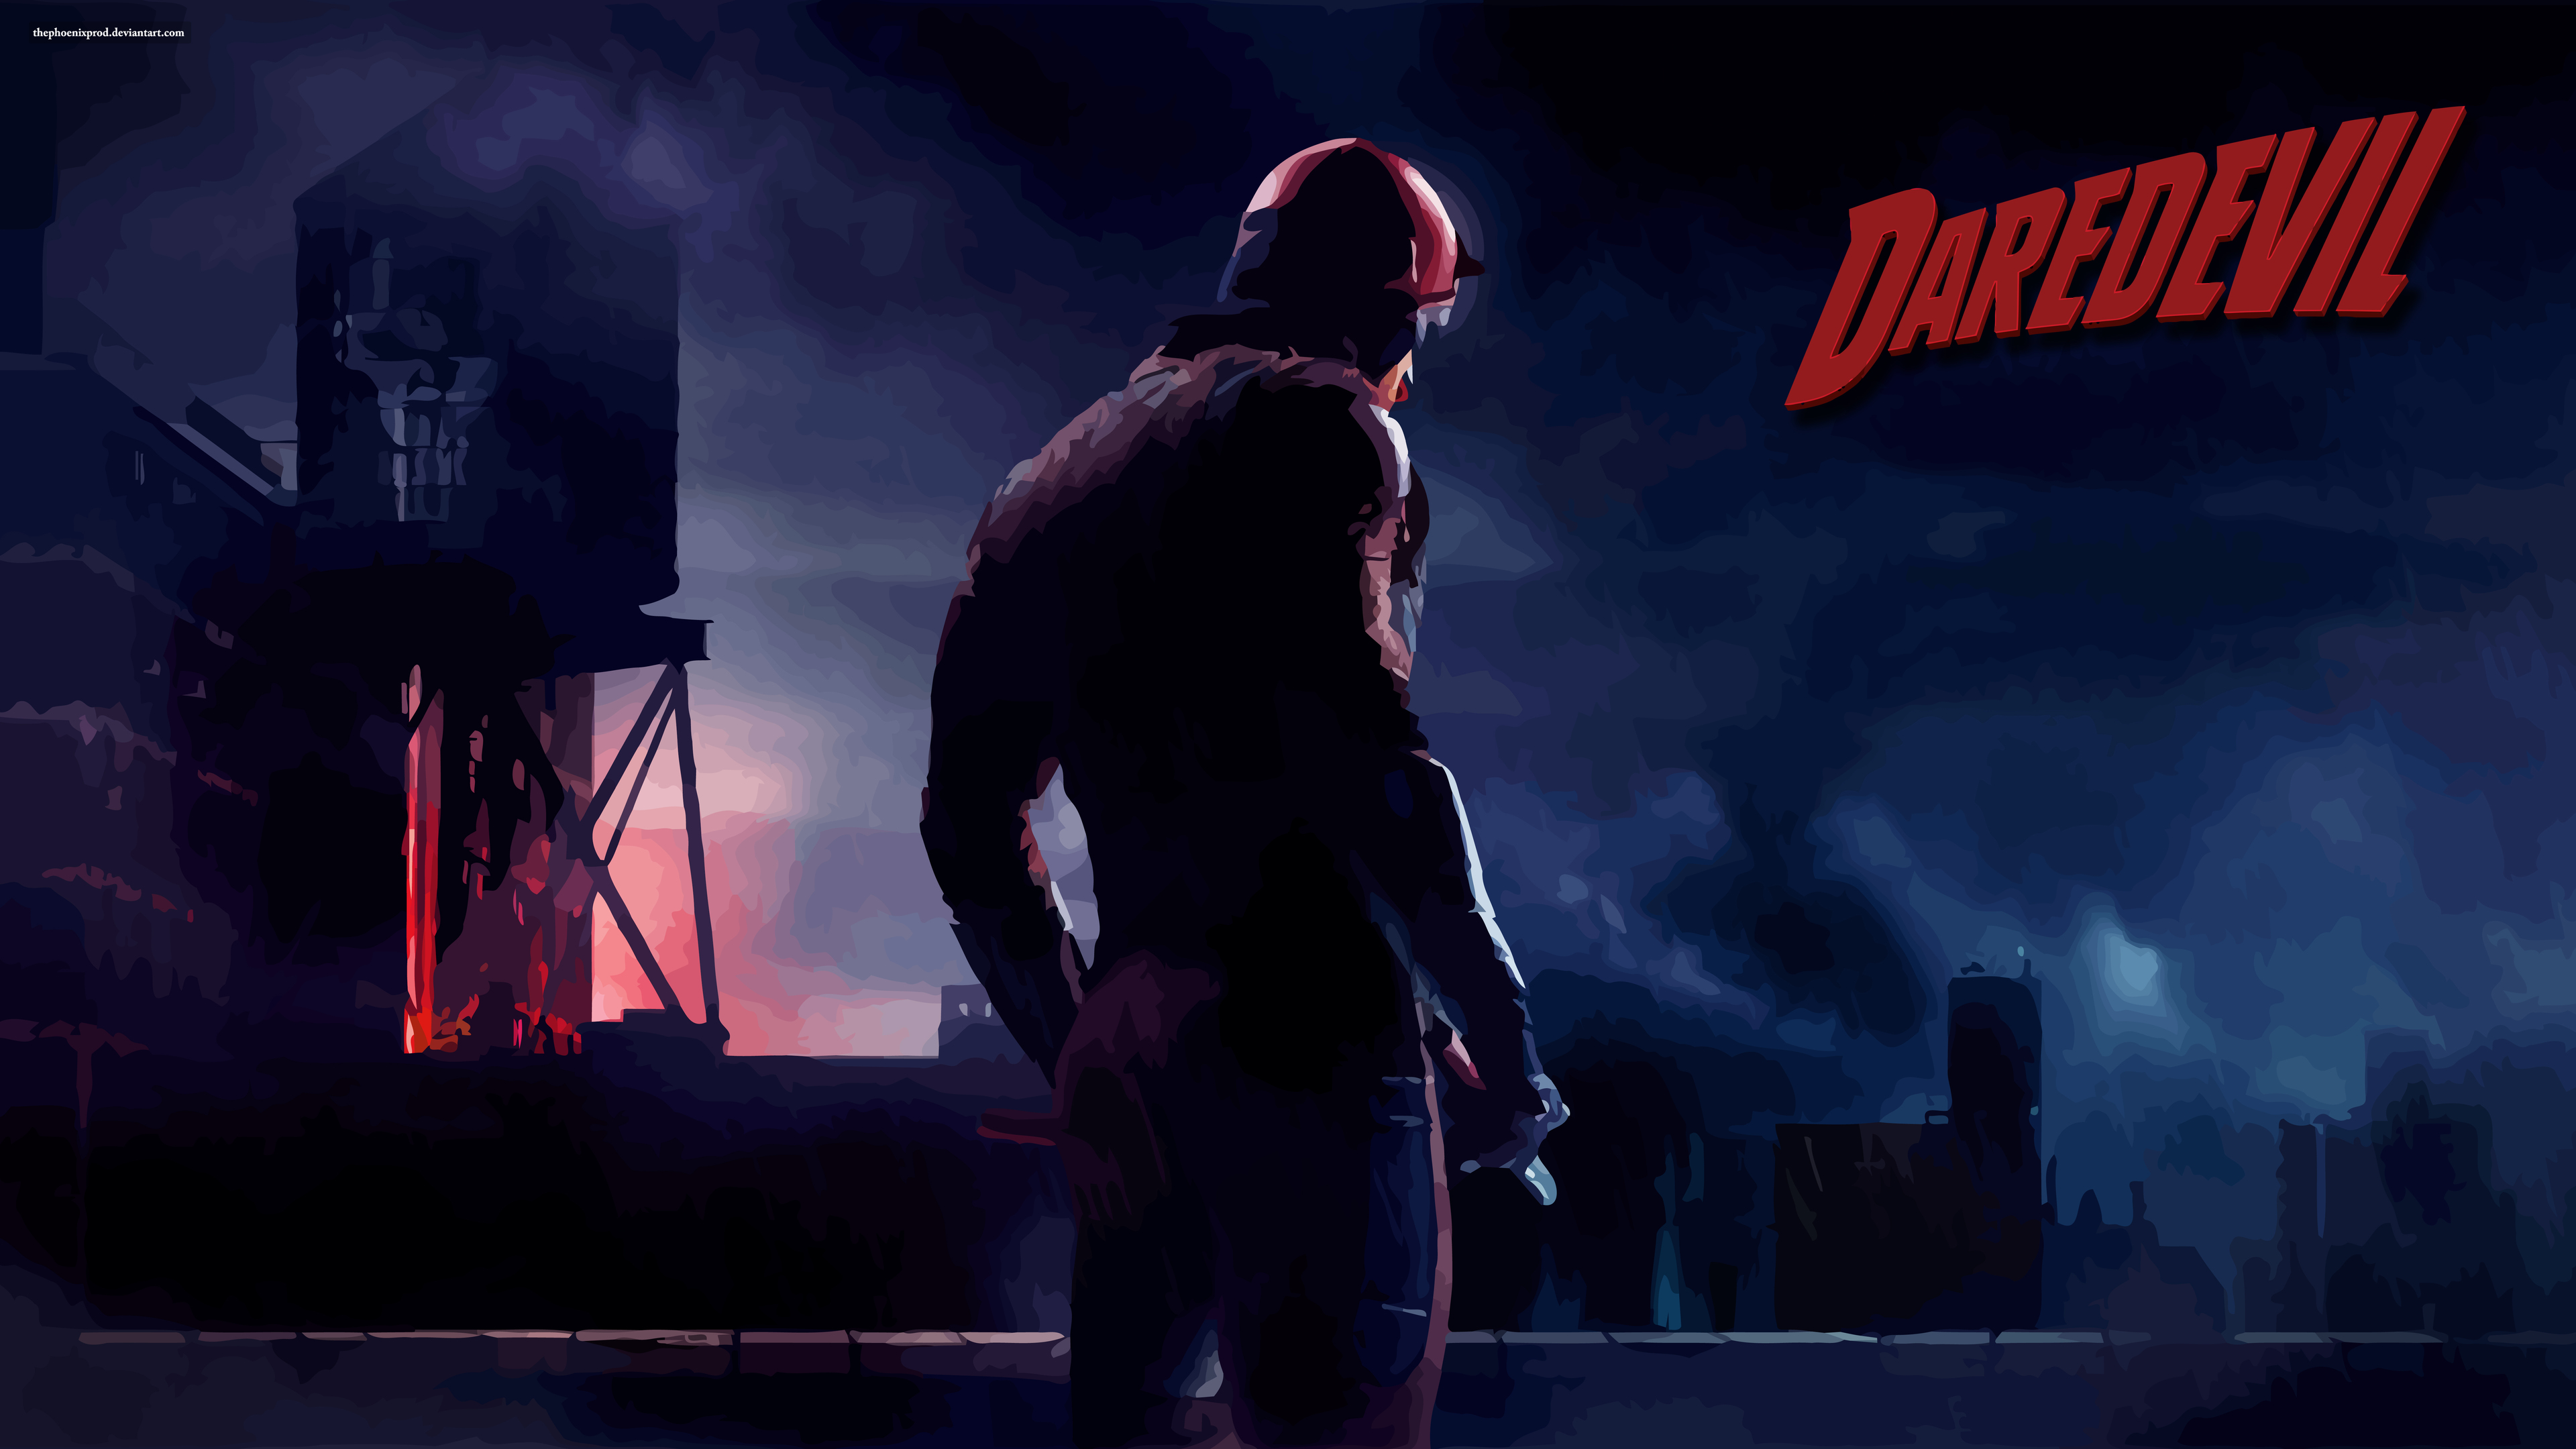 daredevil 10k artwork 1538786572 - Daredevil 10k Artwork - tv shows wallpapers, the defenders wallpapers, hd-wallpapers, deviantart wallpapers, daredevil wallpapers, artwork wallpapers, artist wallpapers, 8k wallpapers, 5k wallpapers, 4k-wallpapers, 10k wallpapers